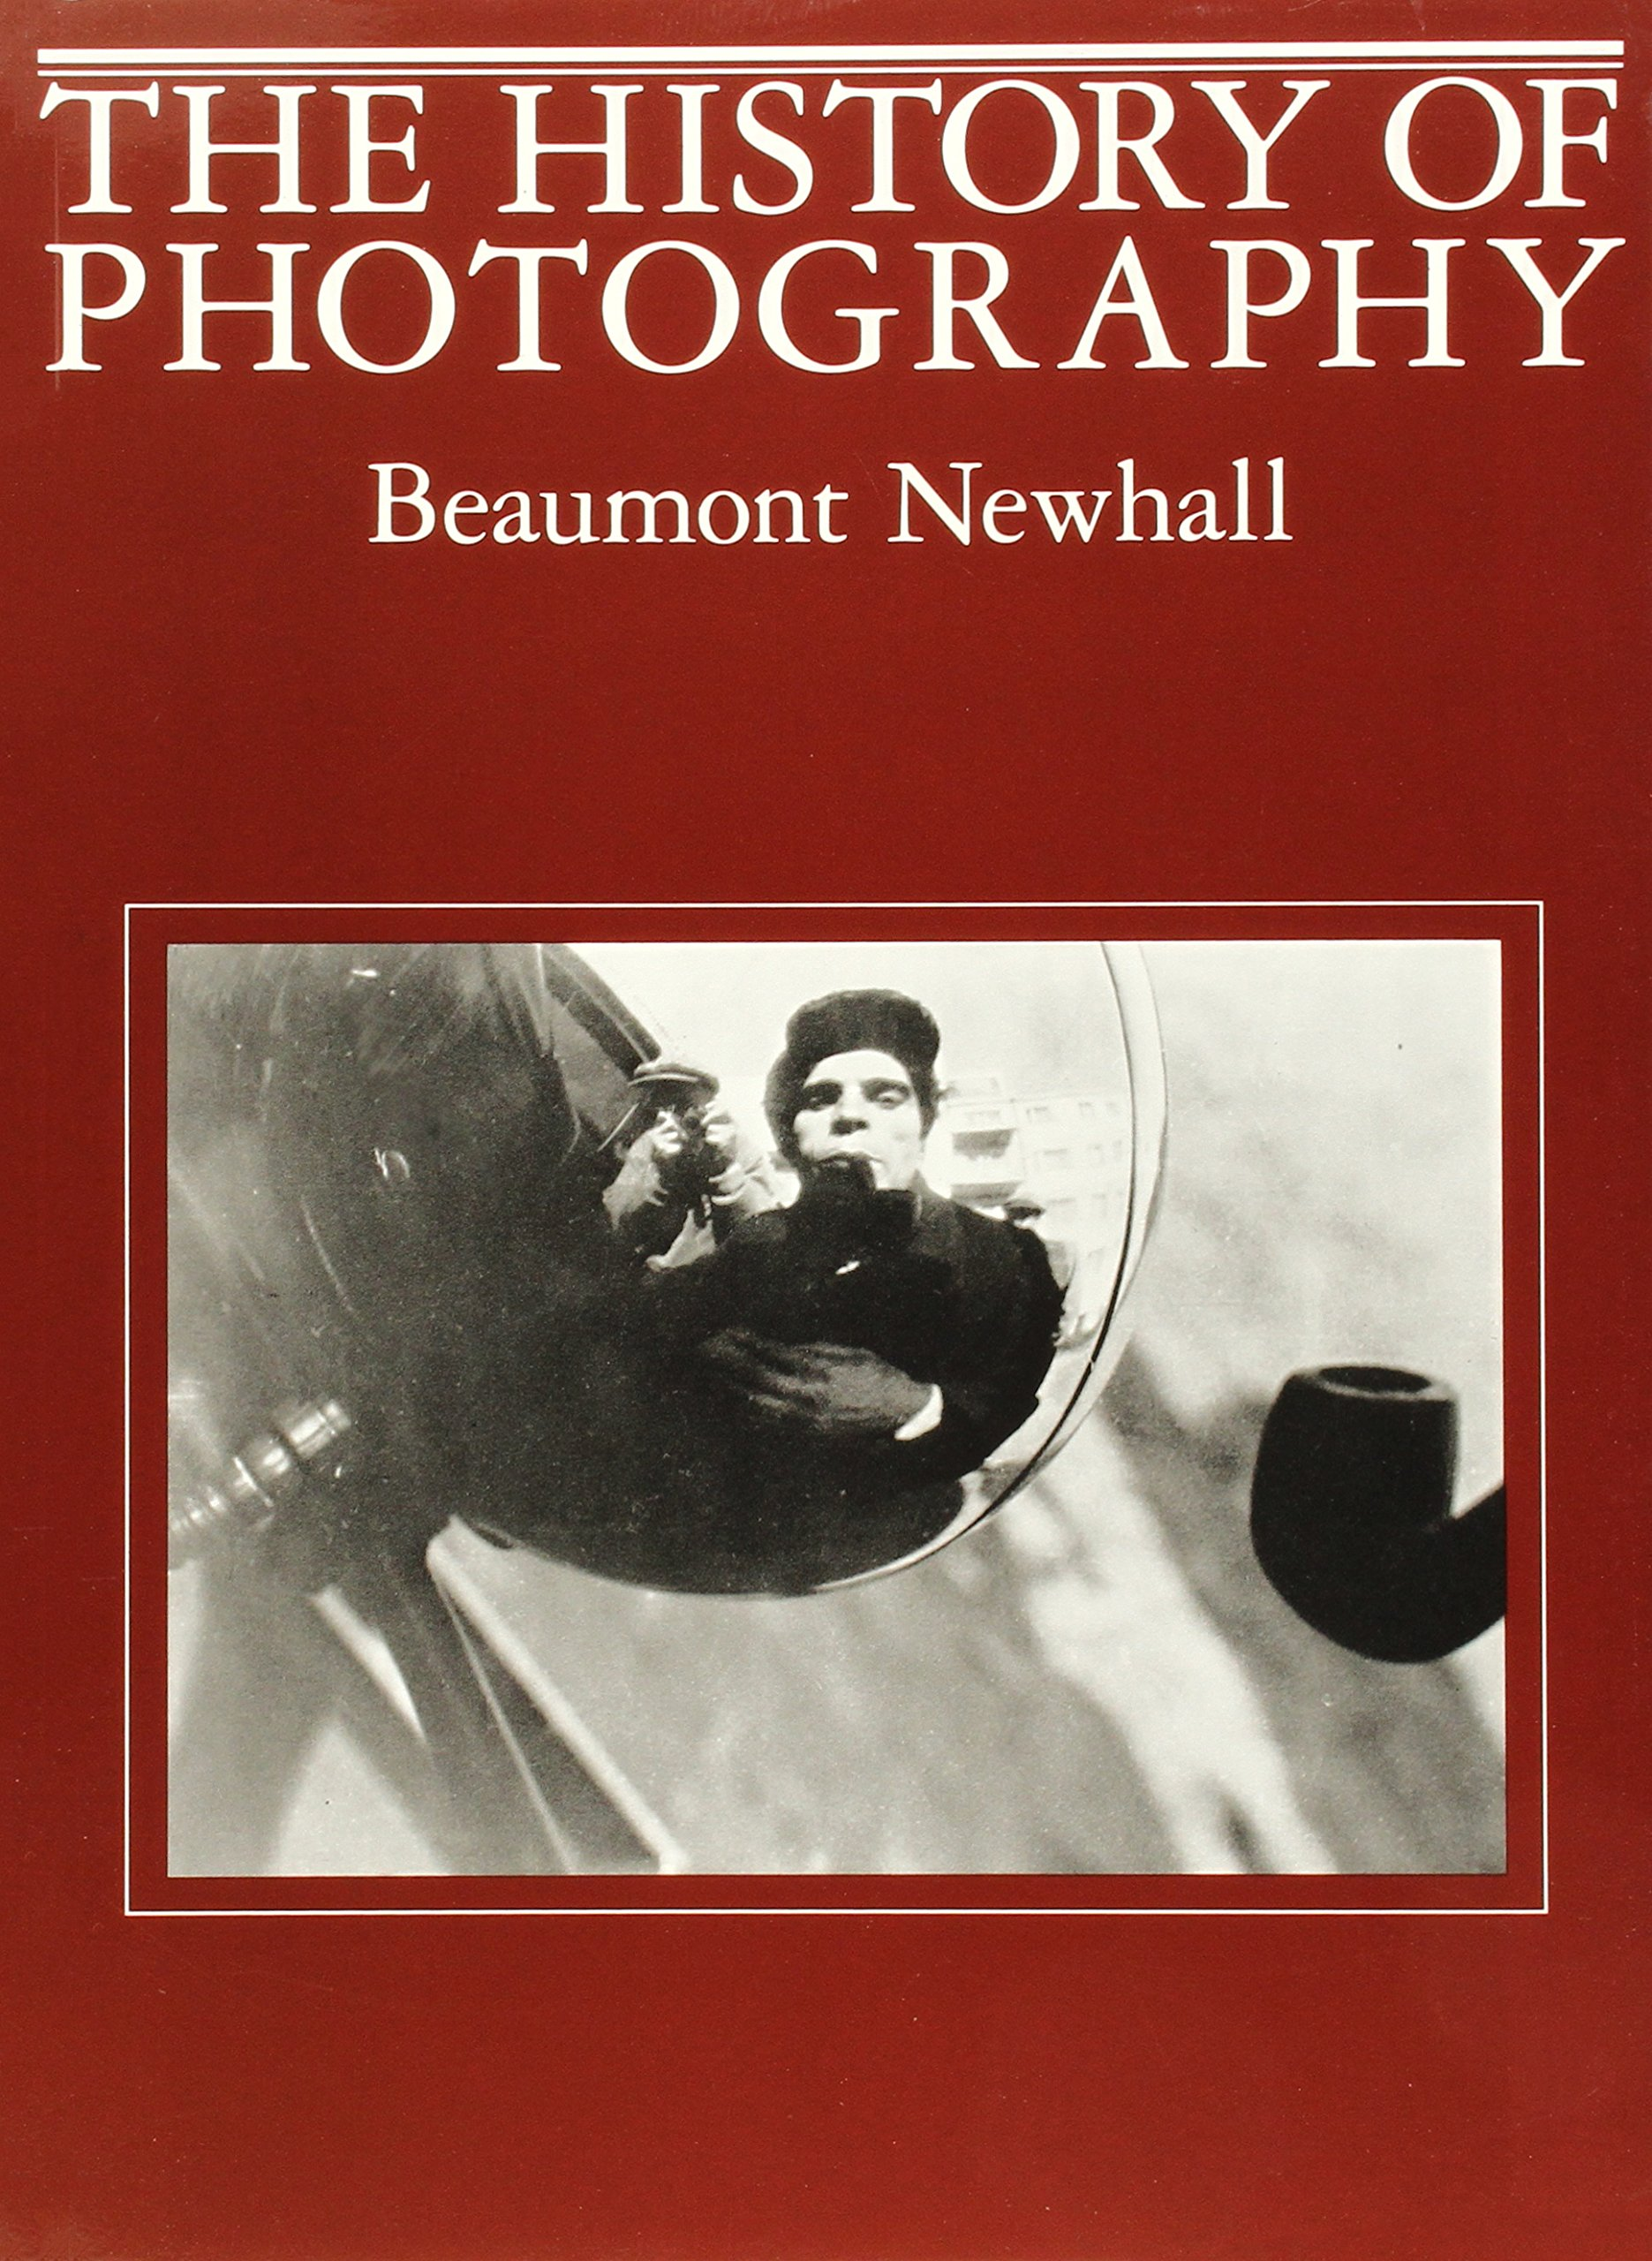 the history of photography from to the present beaumont the history of photography from 1839 to the present beaumont newhall 9780870703812 com books